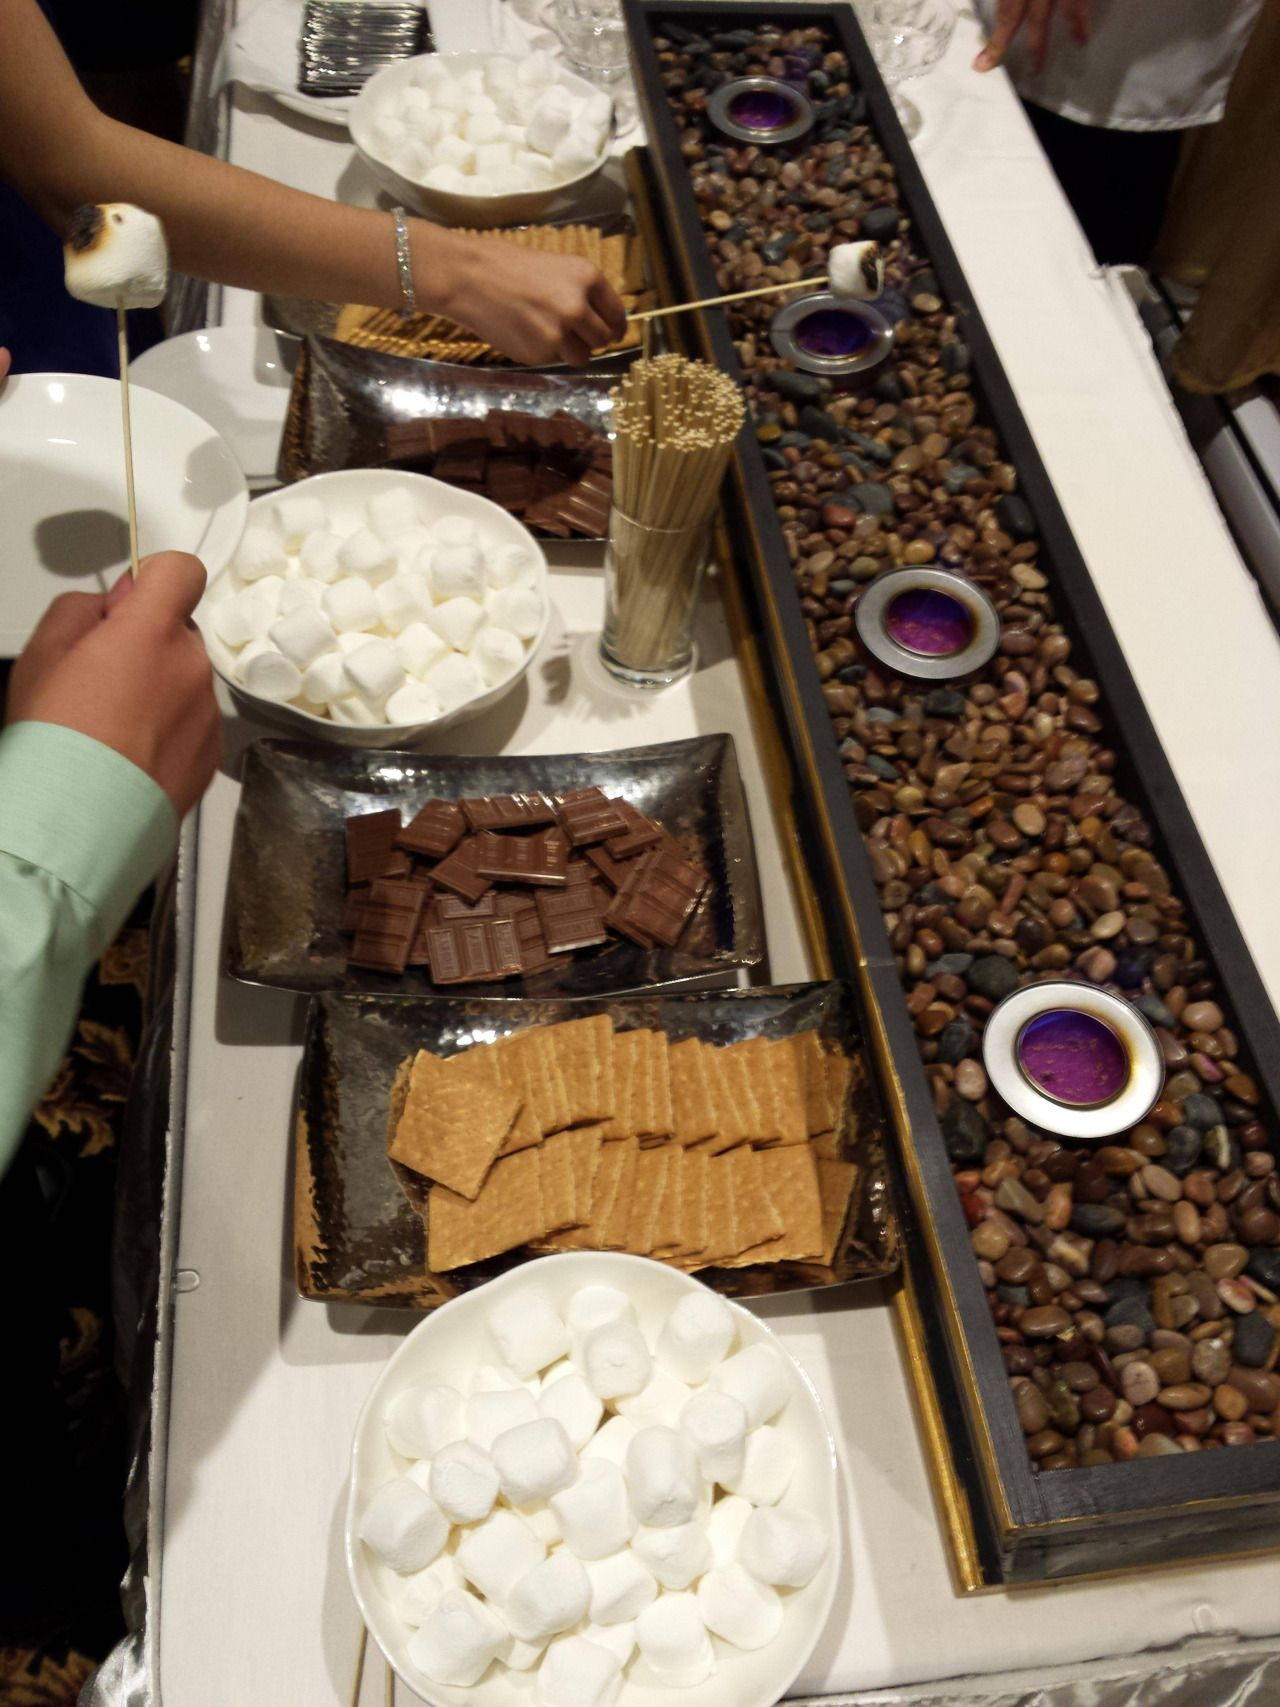 S'mores station at a wedding in Montreal. (4128x3096)(Source)